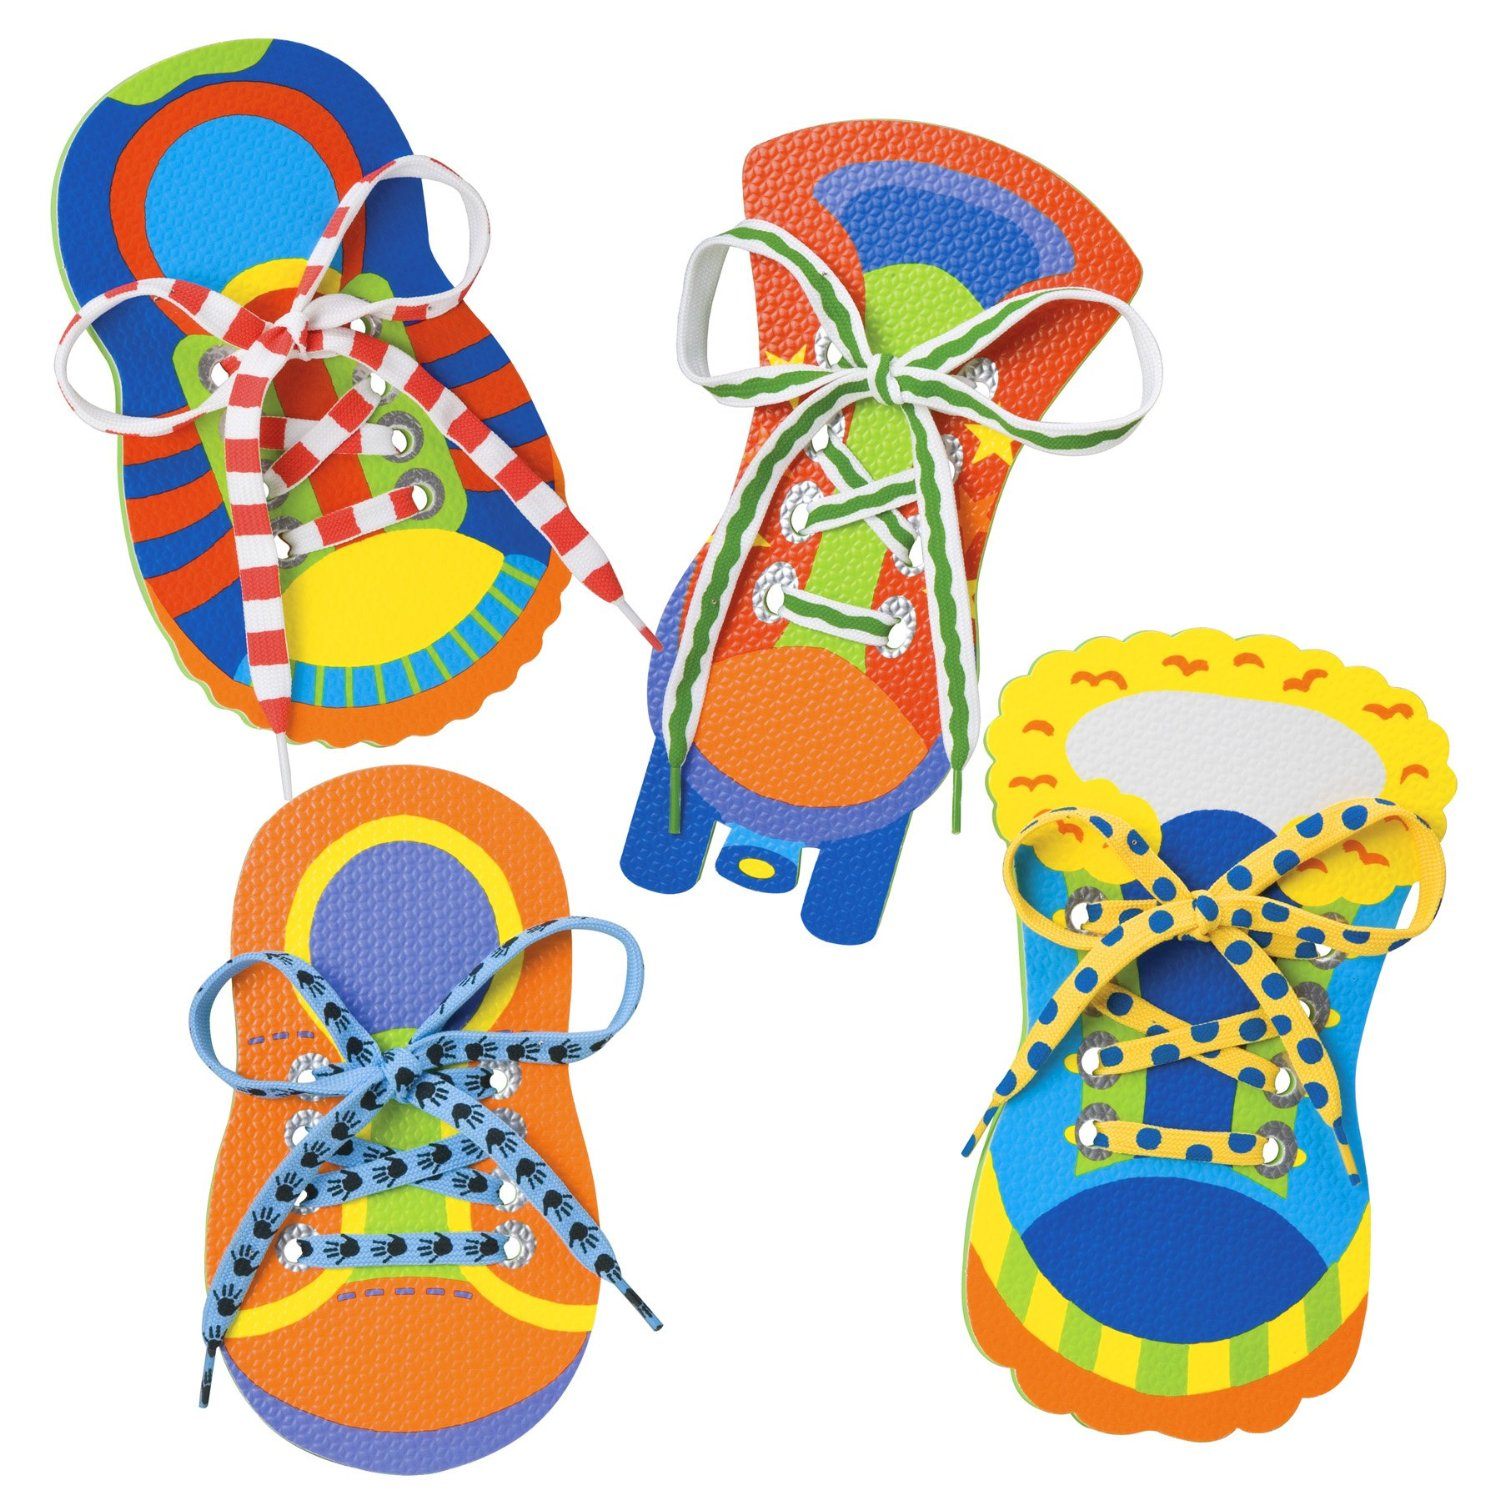 Top 10 Toys That Teach Your Child How To Tie Their Shoes